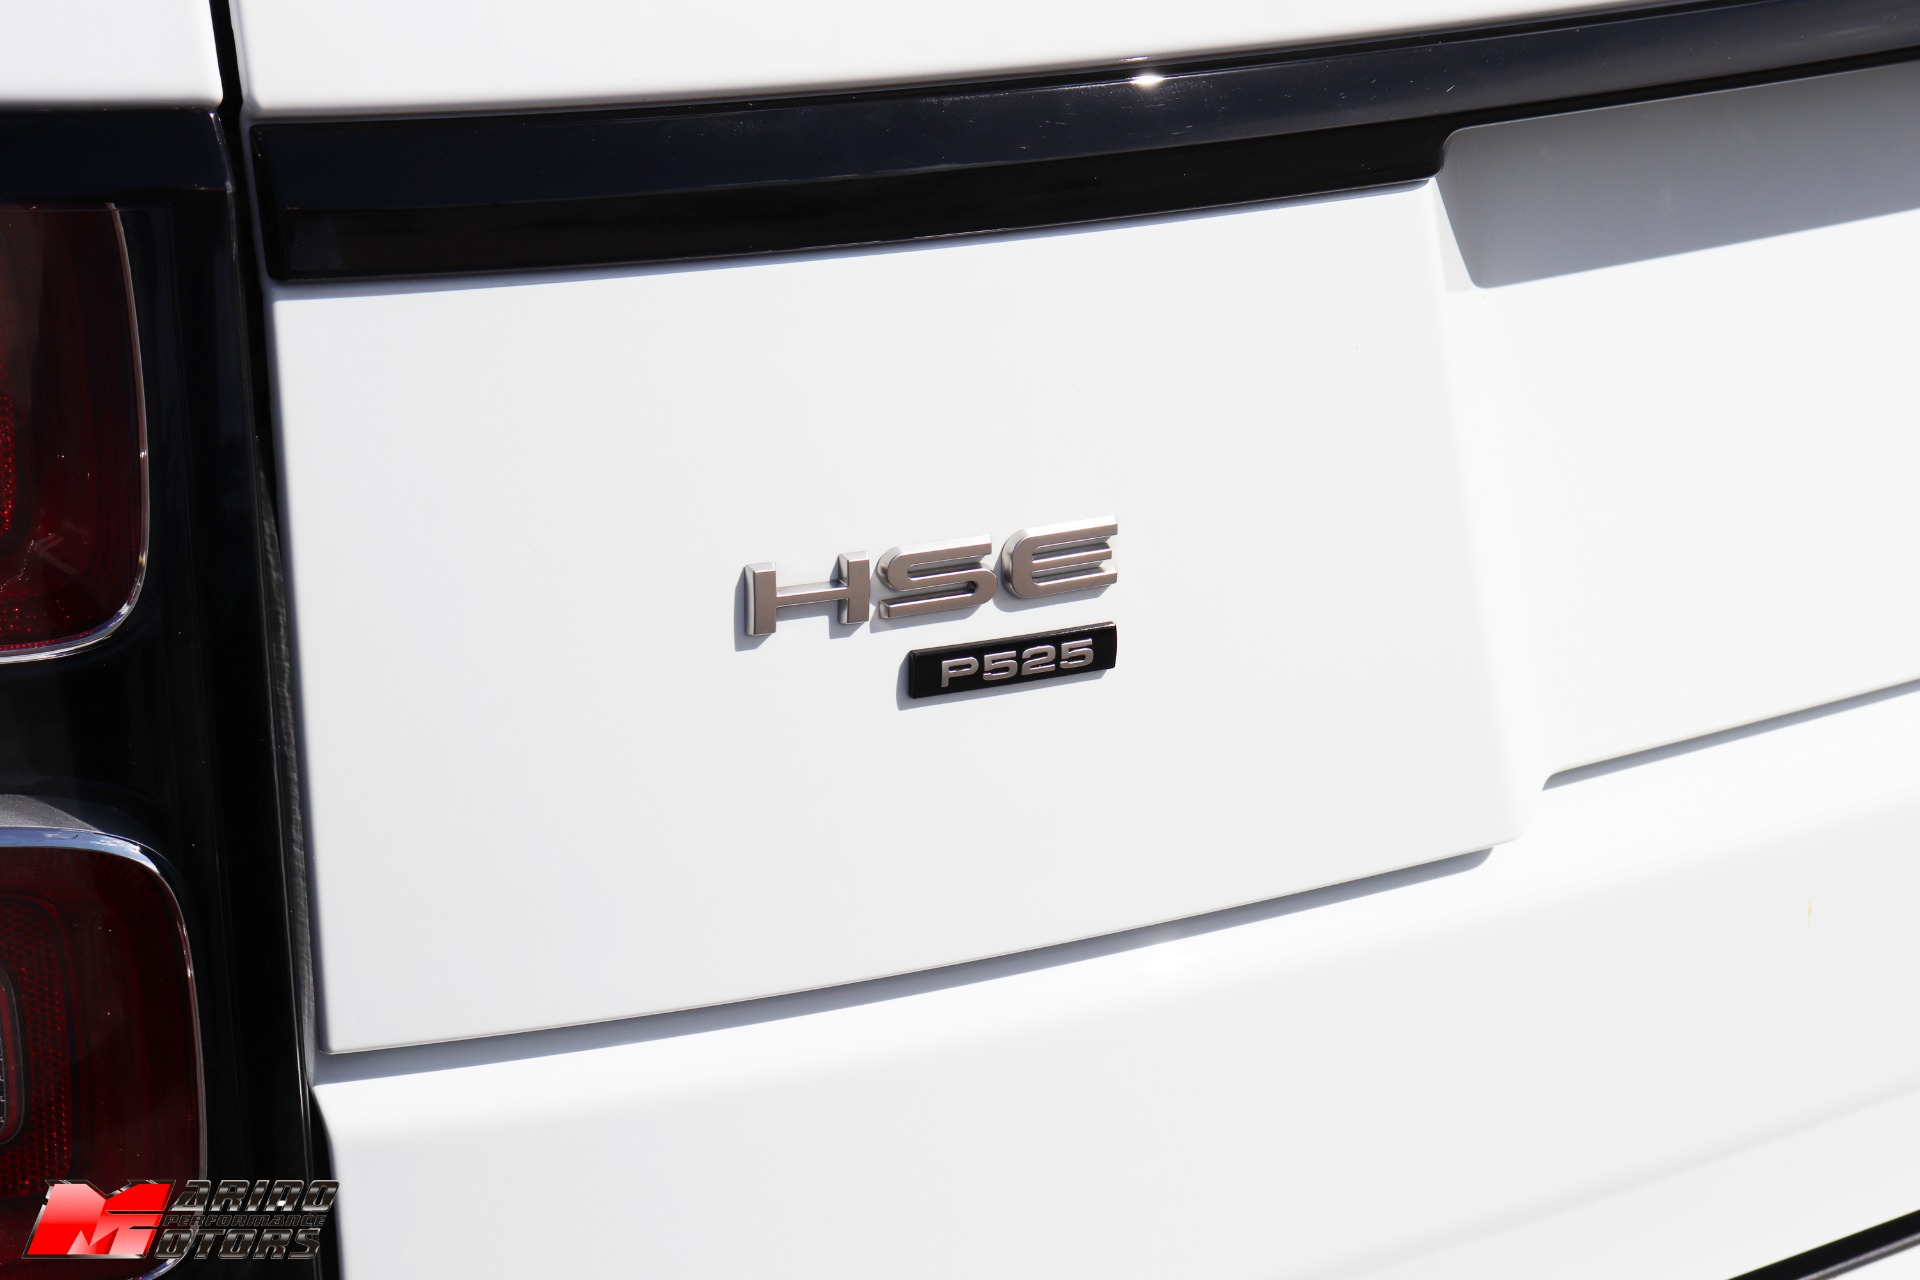 Used-2020-Land-Rover-Range-Rover-P525-HSE